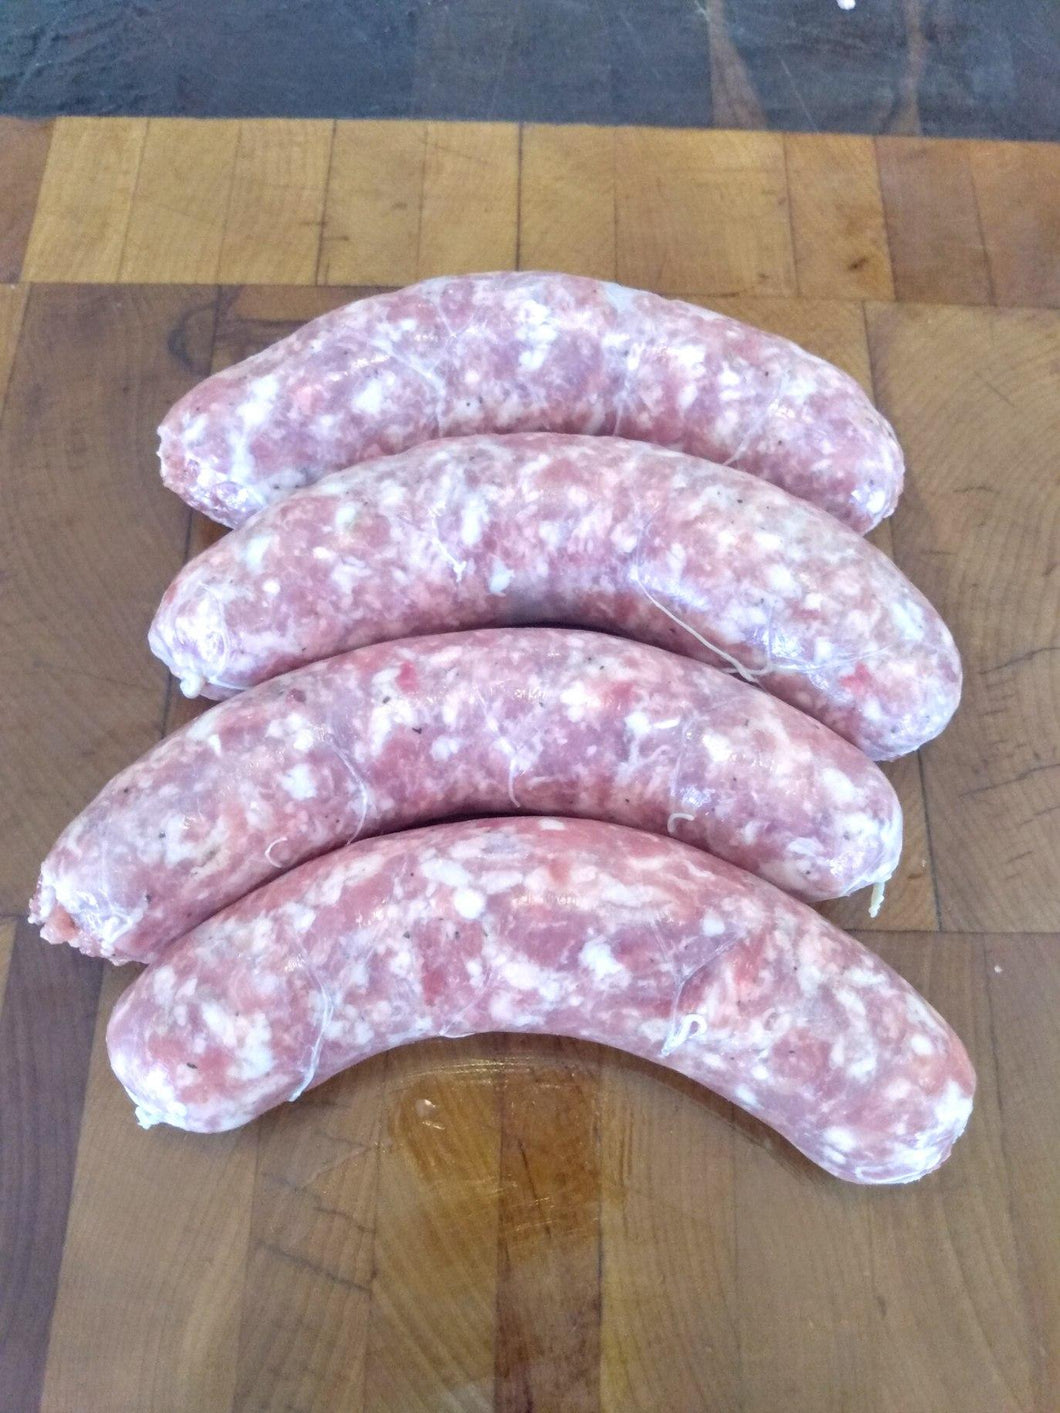 Pork sausages 4pk. -Dexter's